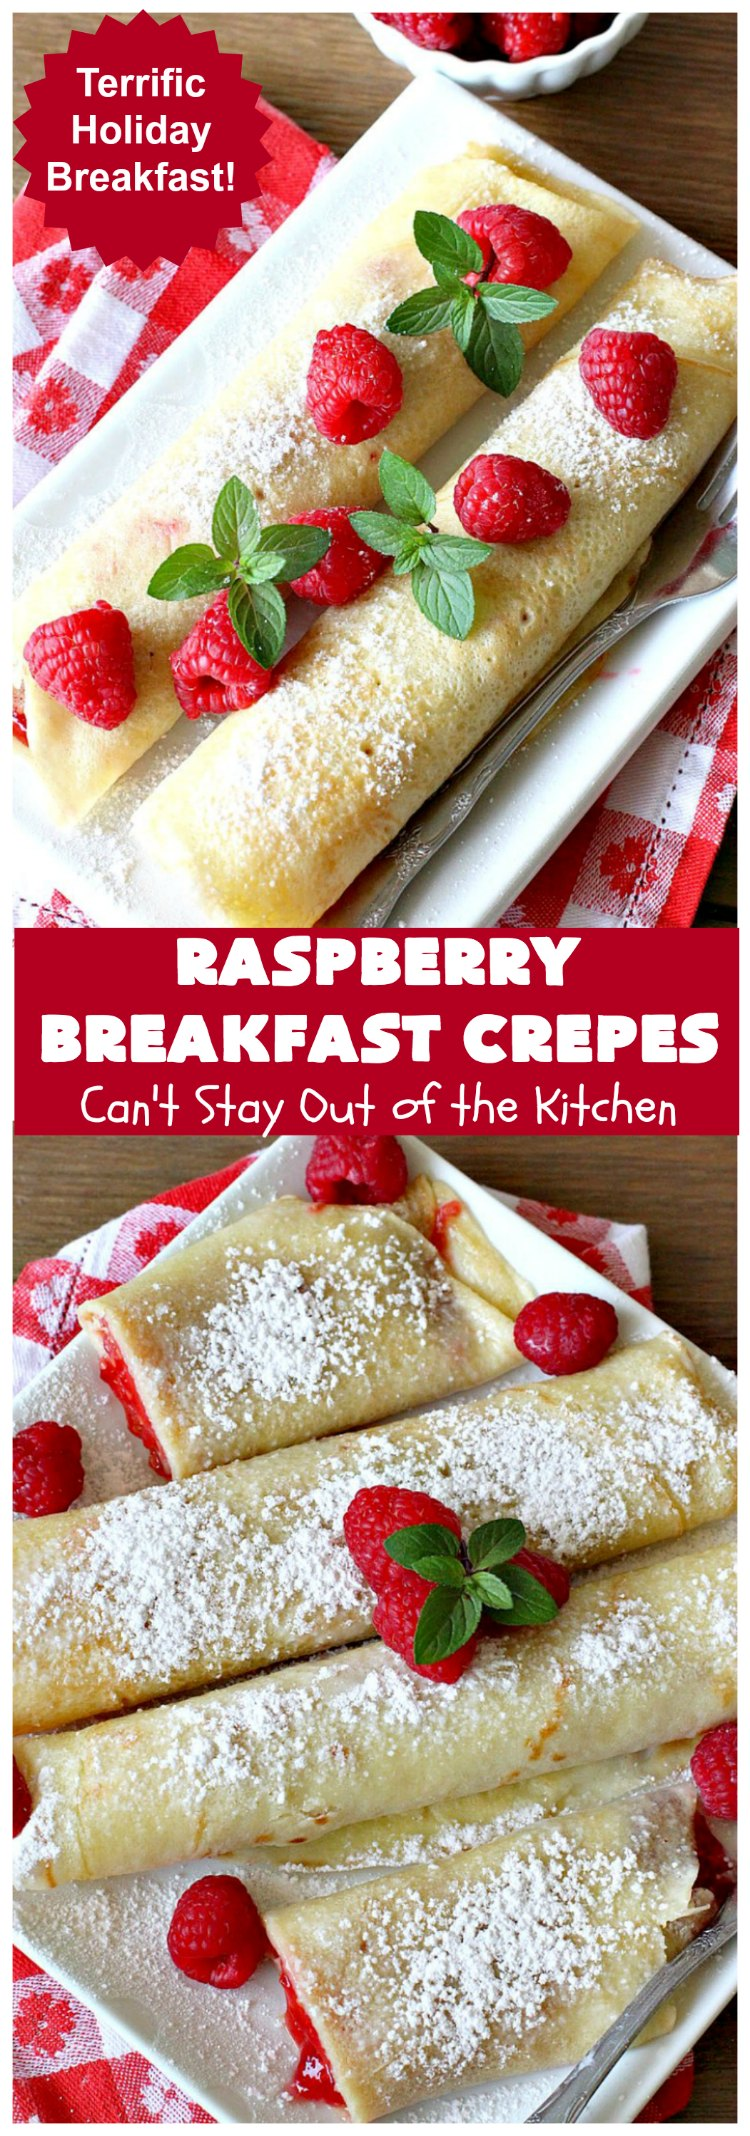 Raspberry Breakfast Crêpes | Can't Stay Out of the Kitchen | these fantastic #breakfast #crêpes are ooey, gooey, rich, decadent & divine! Every bite will have you drooling. Perfect for a #holiday breakfast. #raspberries #BreakfastCrêpes #RaspberryBreakfastCrêpes #HolidayBreakfast